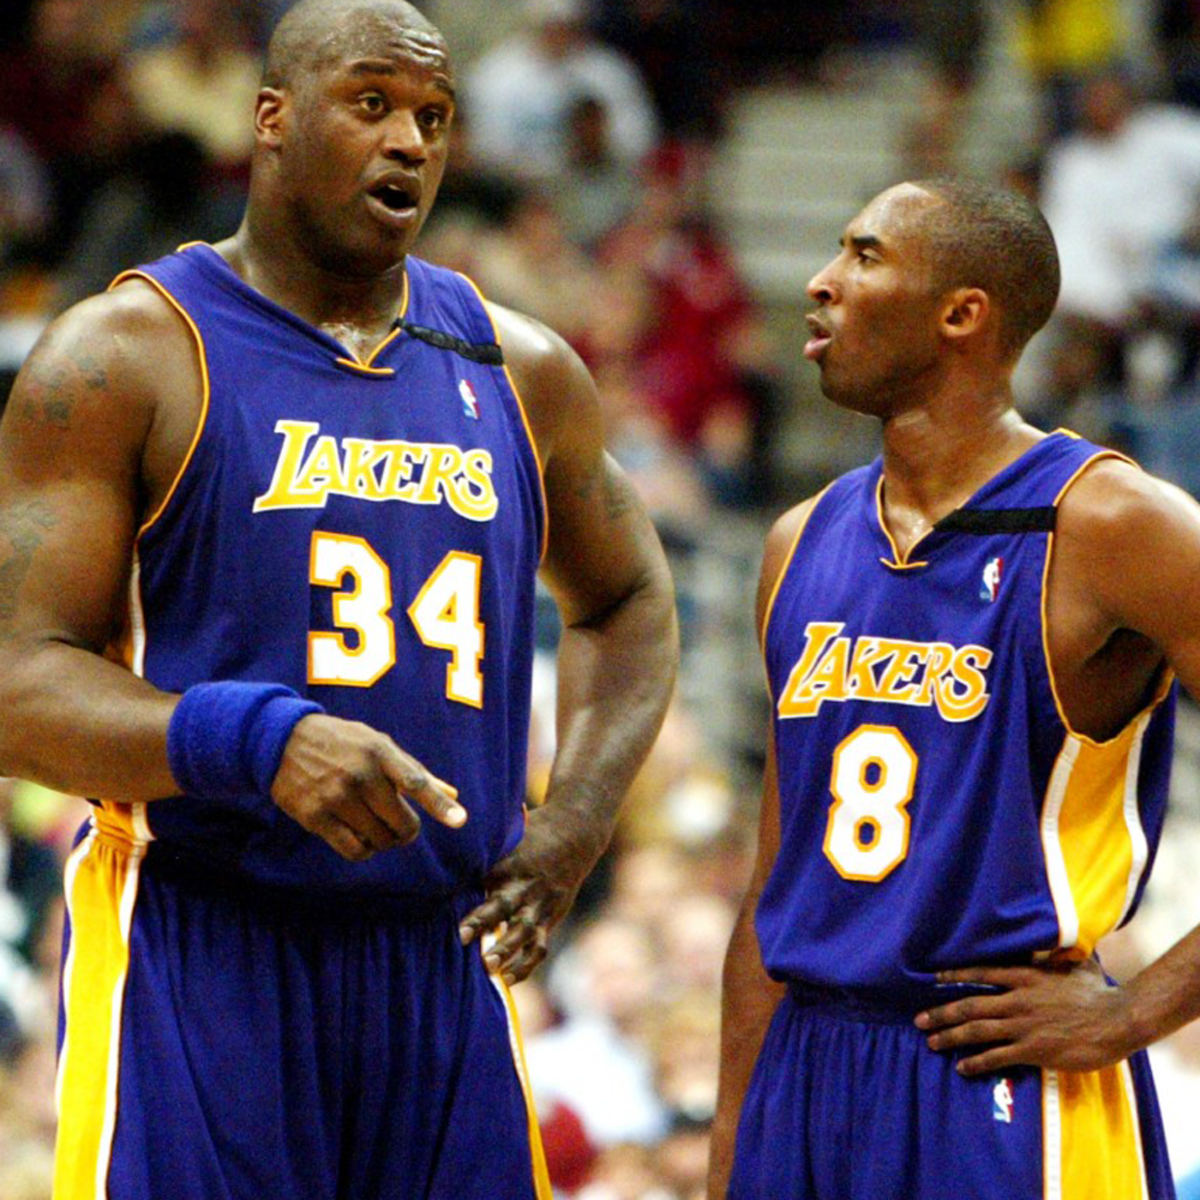 Shaquille O'neal talking with his partner Kobe Bryant.